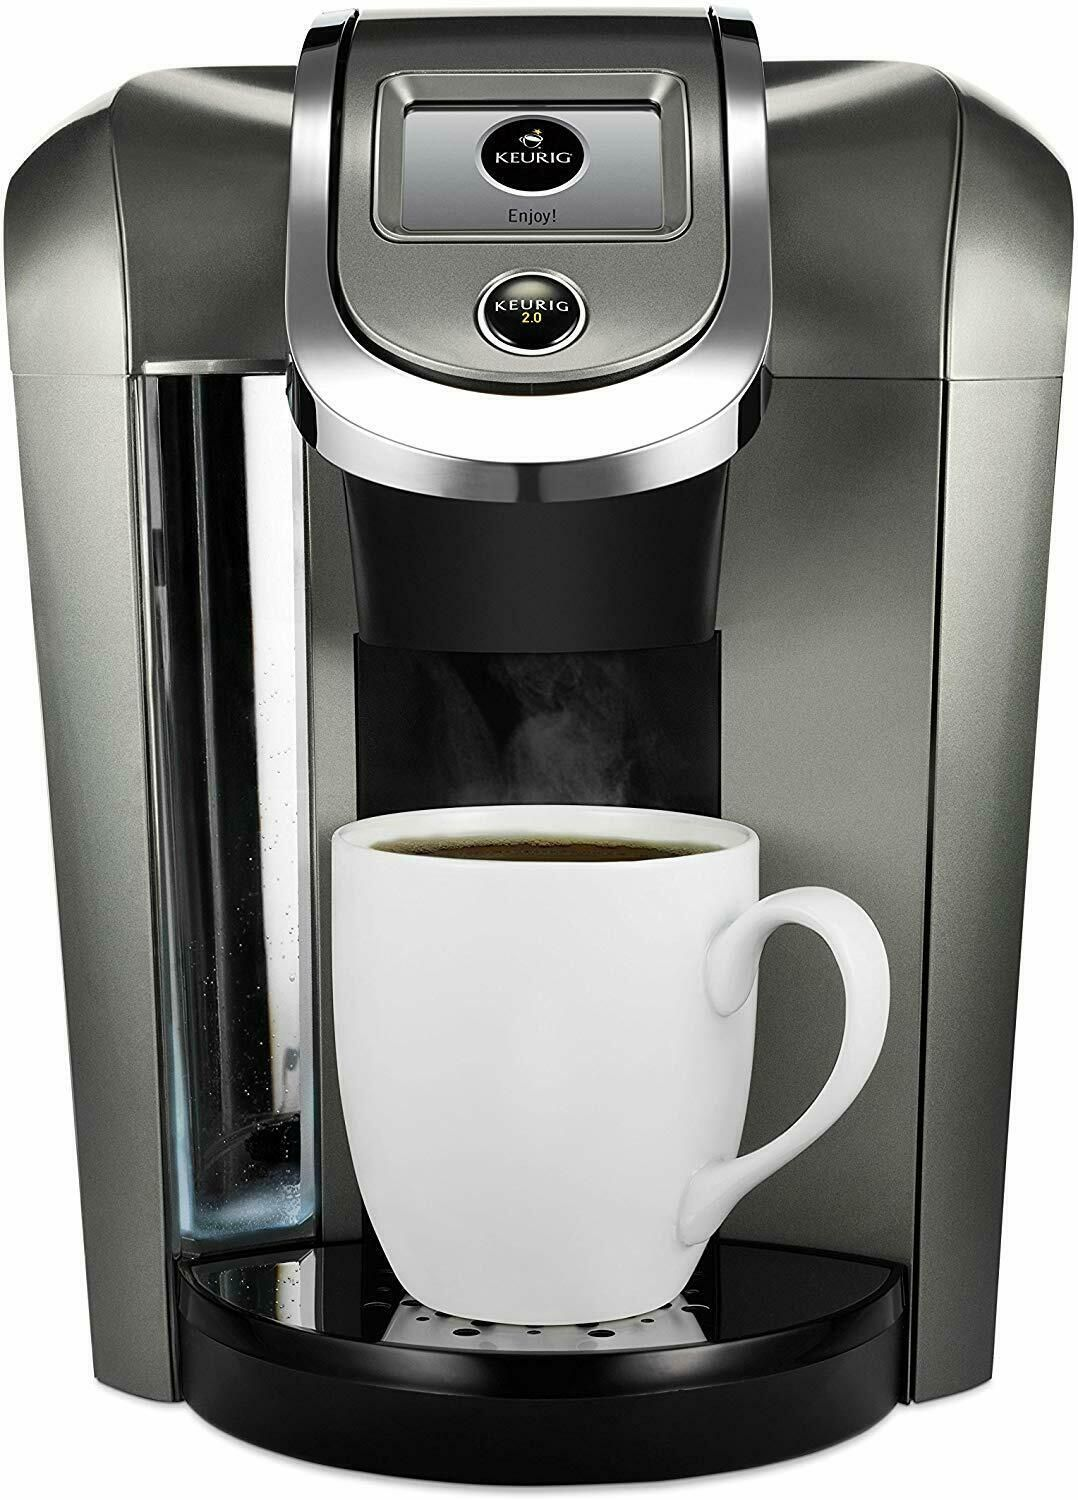 Details About Keurig K500 Coffee Maker Single Serve 2 0 Brewing System Platinum In 2020 With Images Single Serve Coffee Makers Keurig Coffee Makers Single Coffee Maker